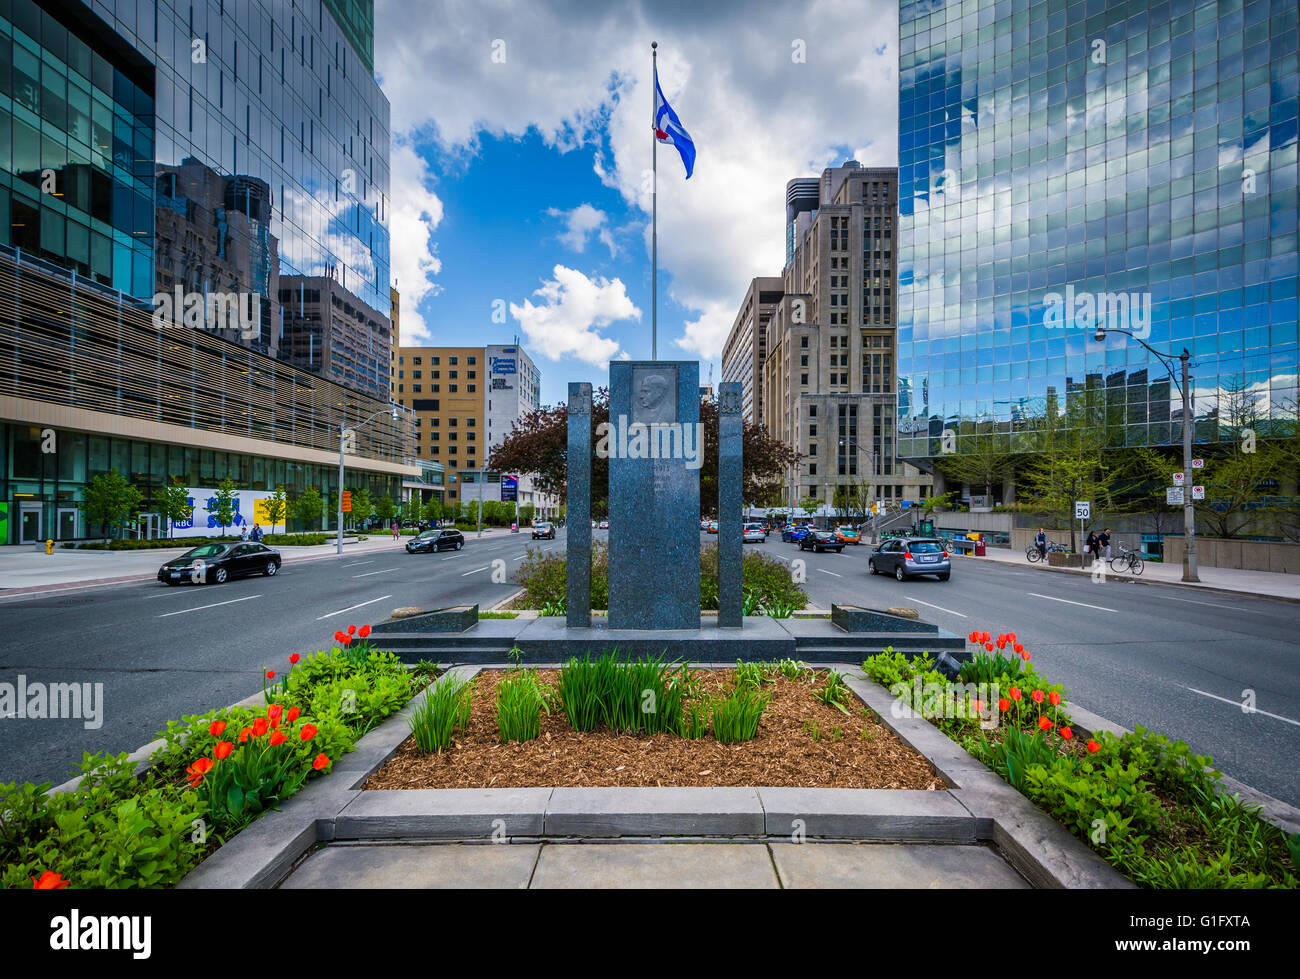 Gardens and memorial in the median of University Avenue, and modern buildings in the Discovery District, of Toronto, - Stock Image